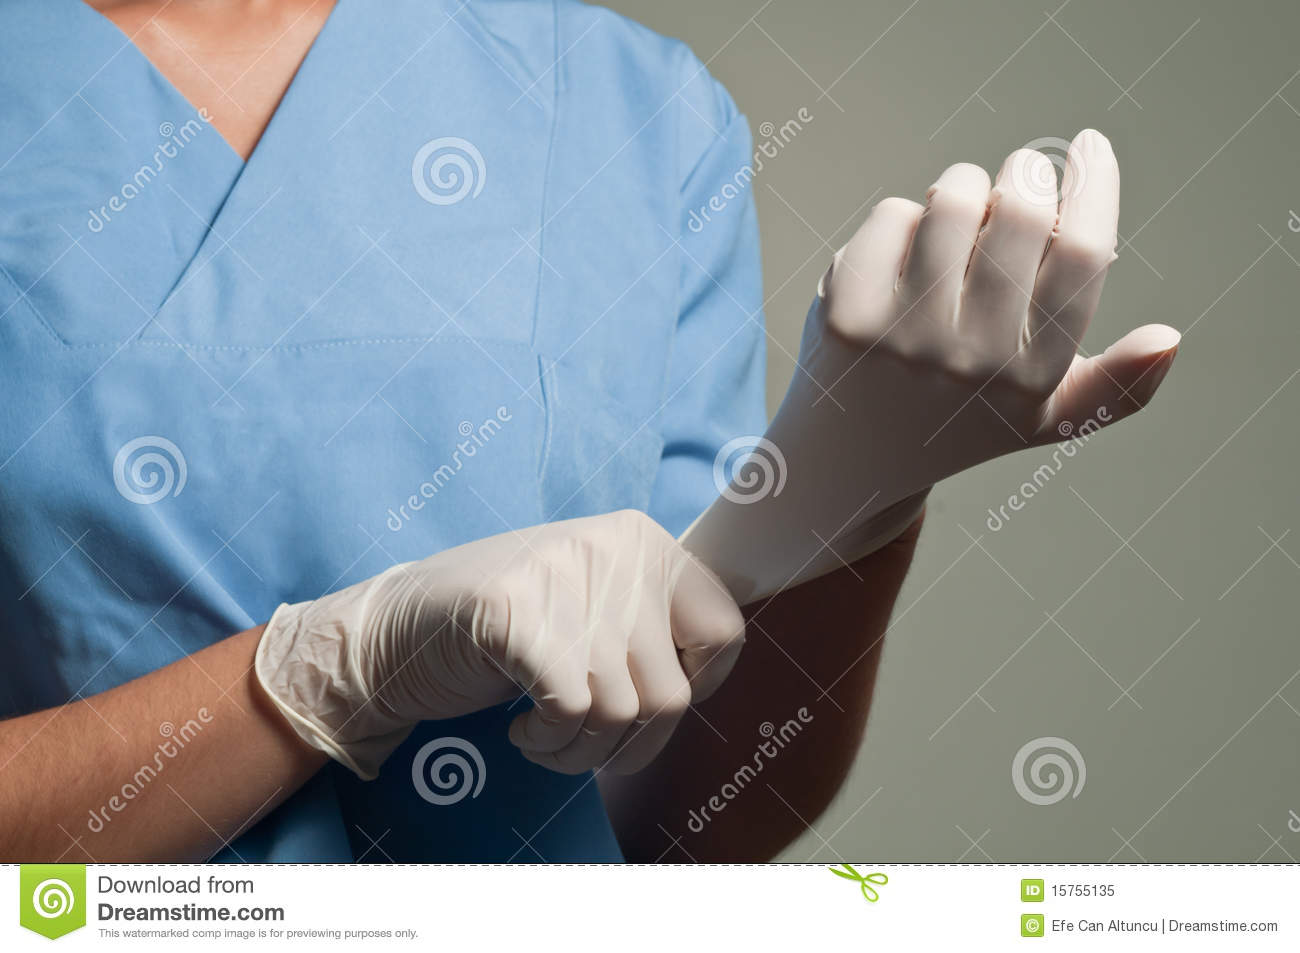 Wearing Medical Gloves